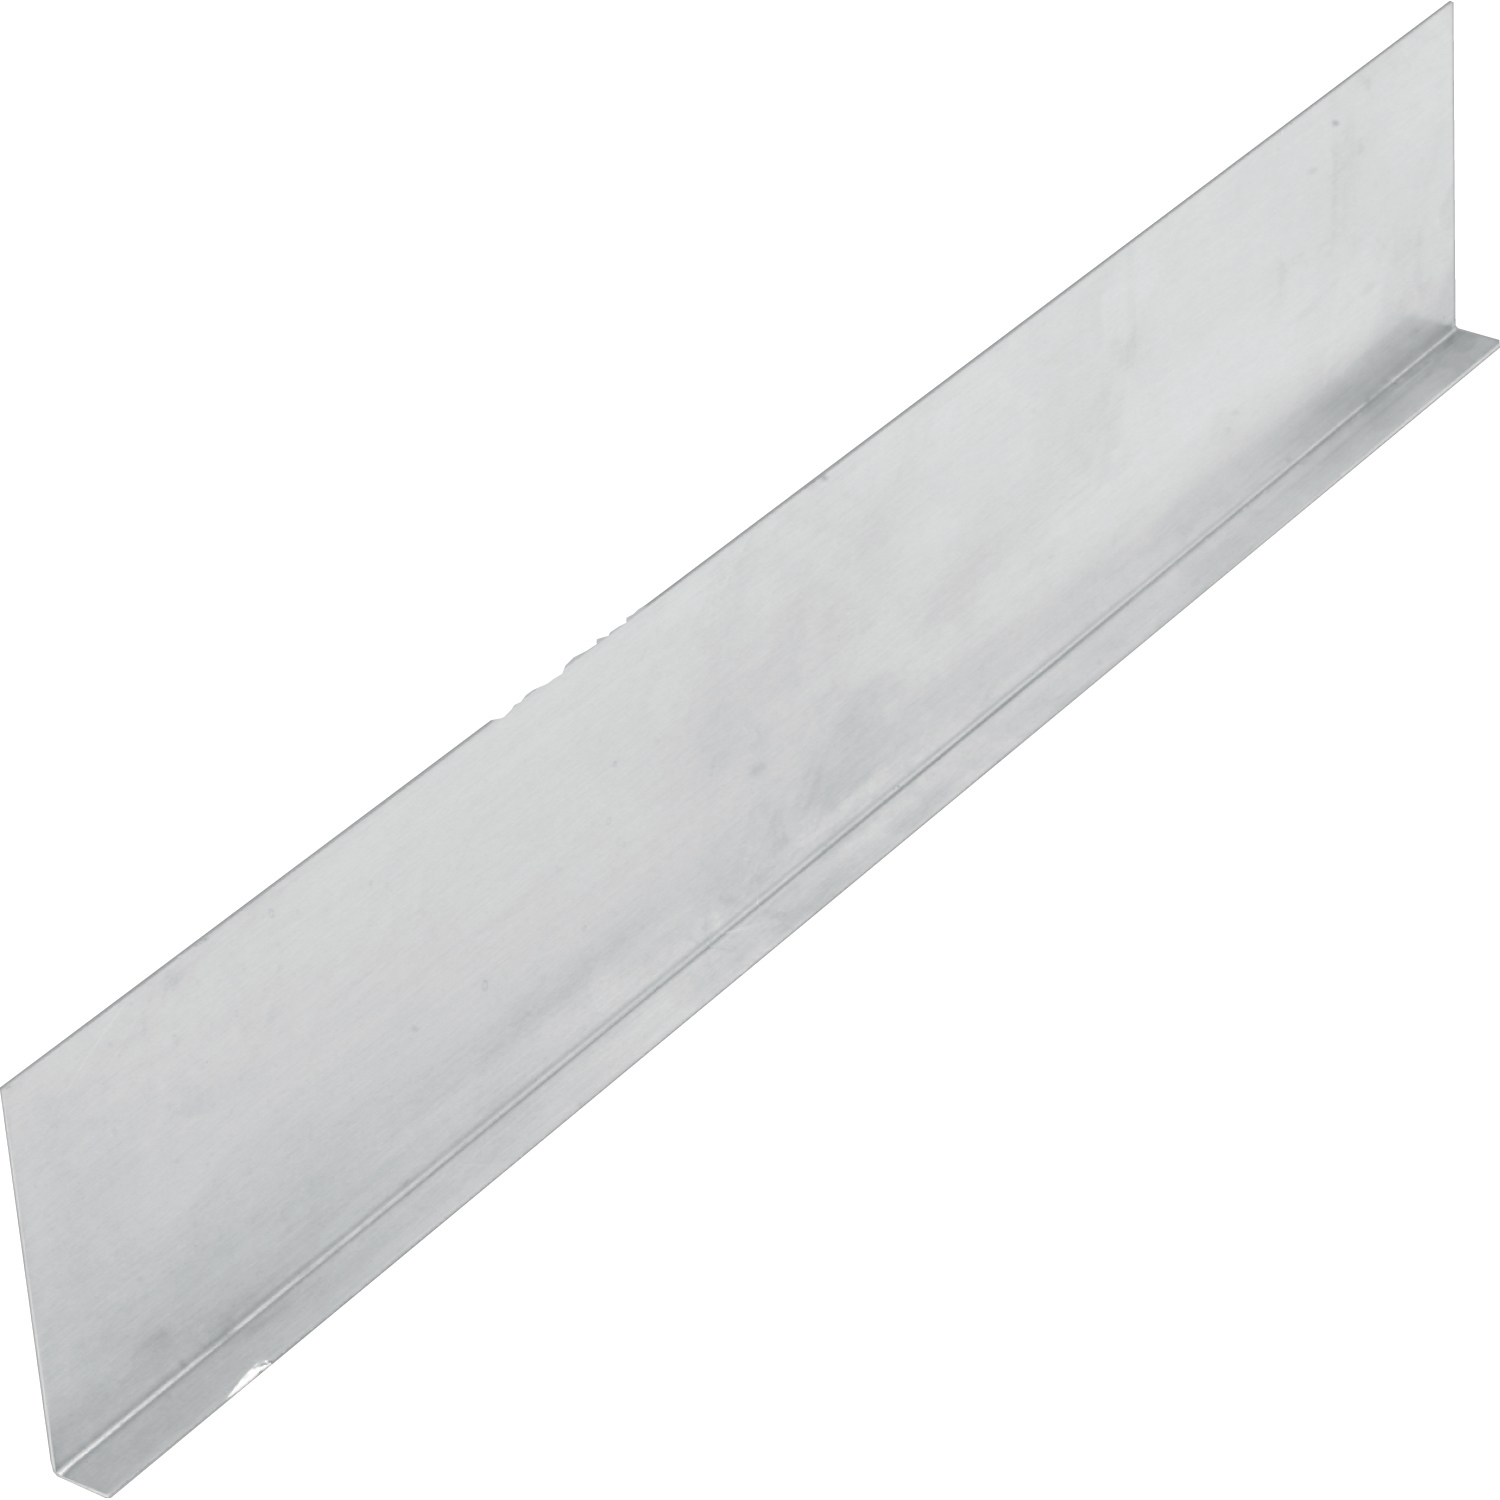 HDG 4IN D BARRIER STRIP 5FT LONG